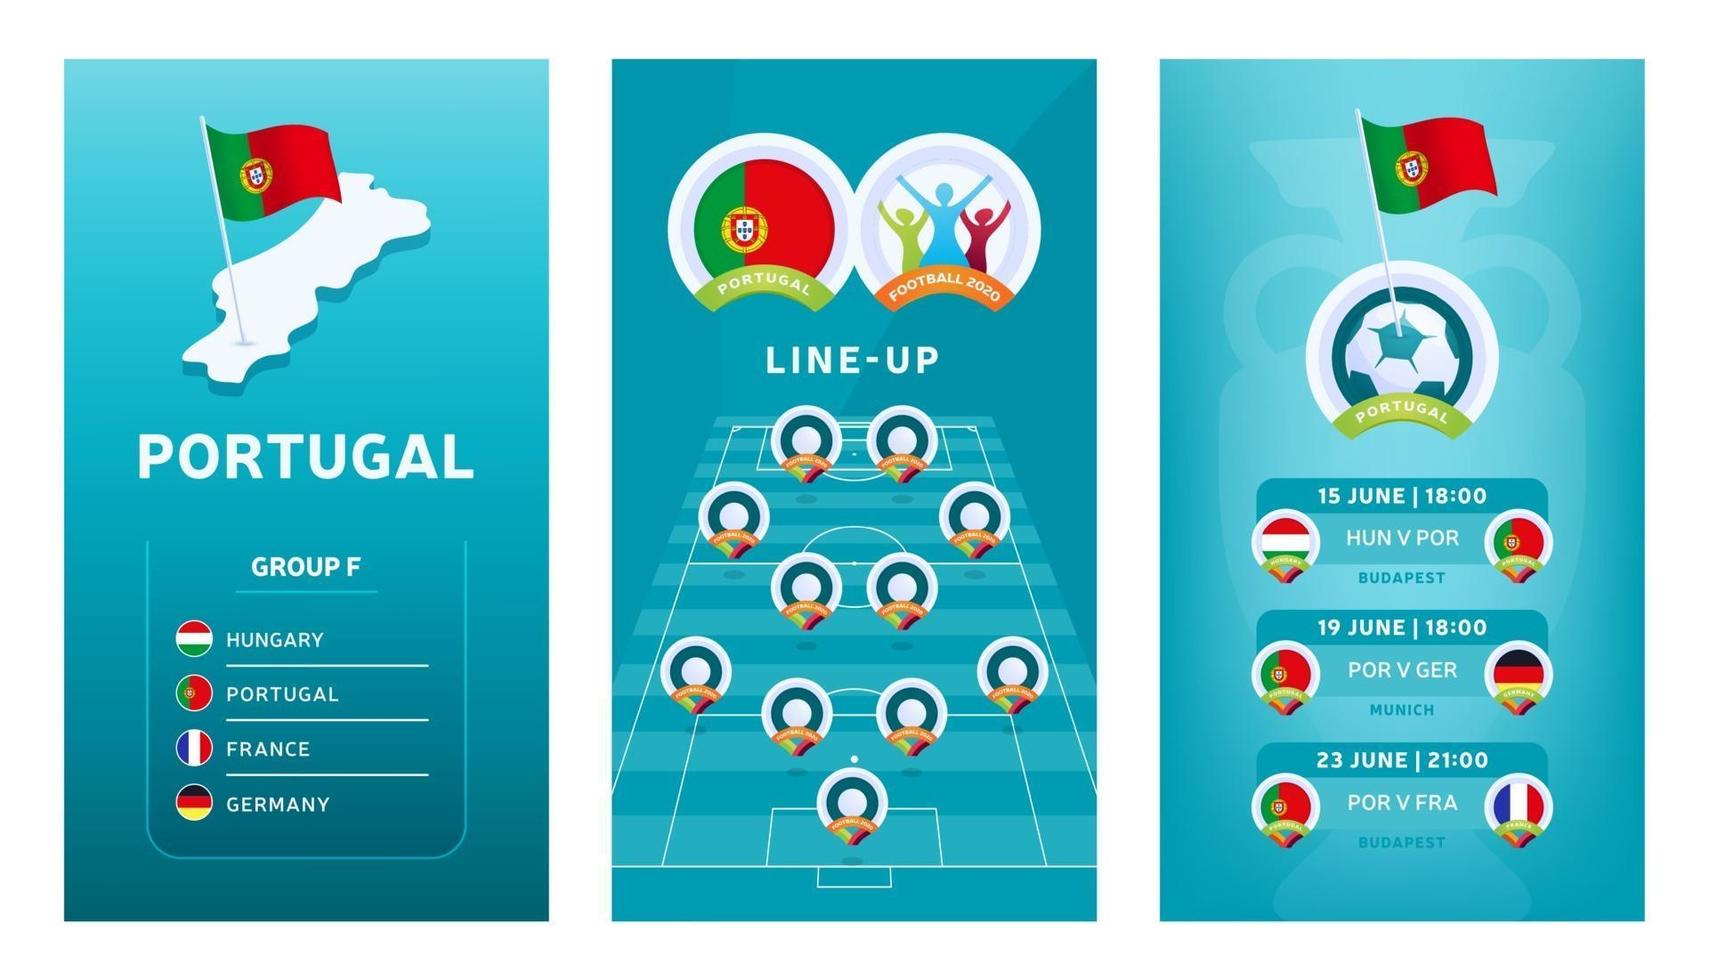 European 2020 football vertical banner set for social media. Portugal group F banner with isometric map, pin flag, match schedule and line-up on soccer field vector